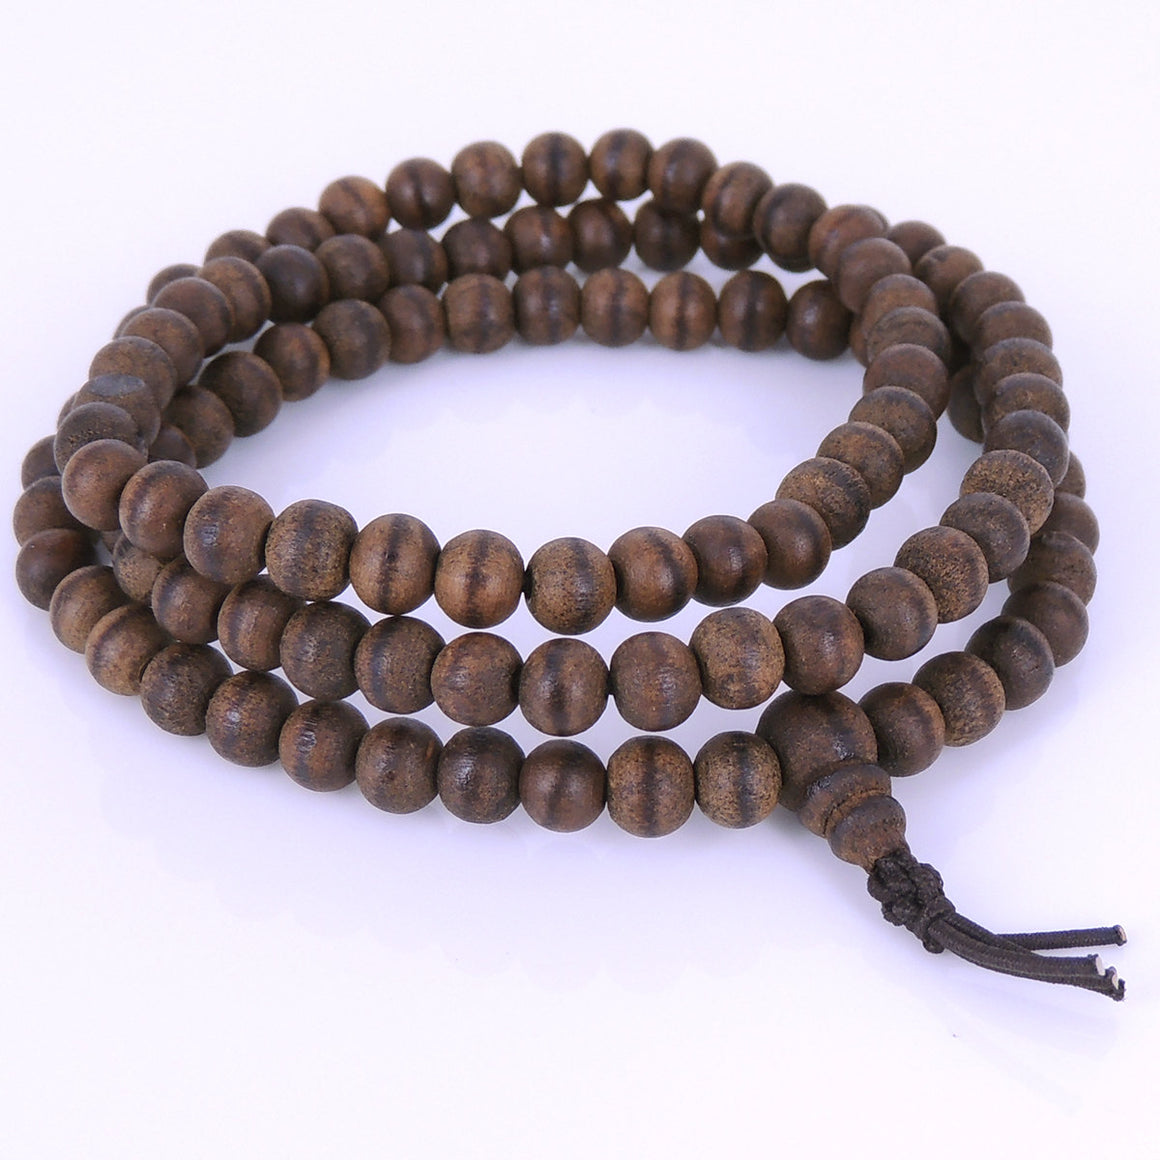 6mm Grade AA Vietnamese Agarwood Bracelet/Necklace 108 Beads for Meditation - Gem & Silver AW007